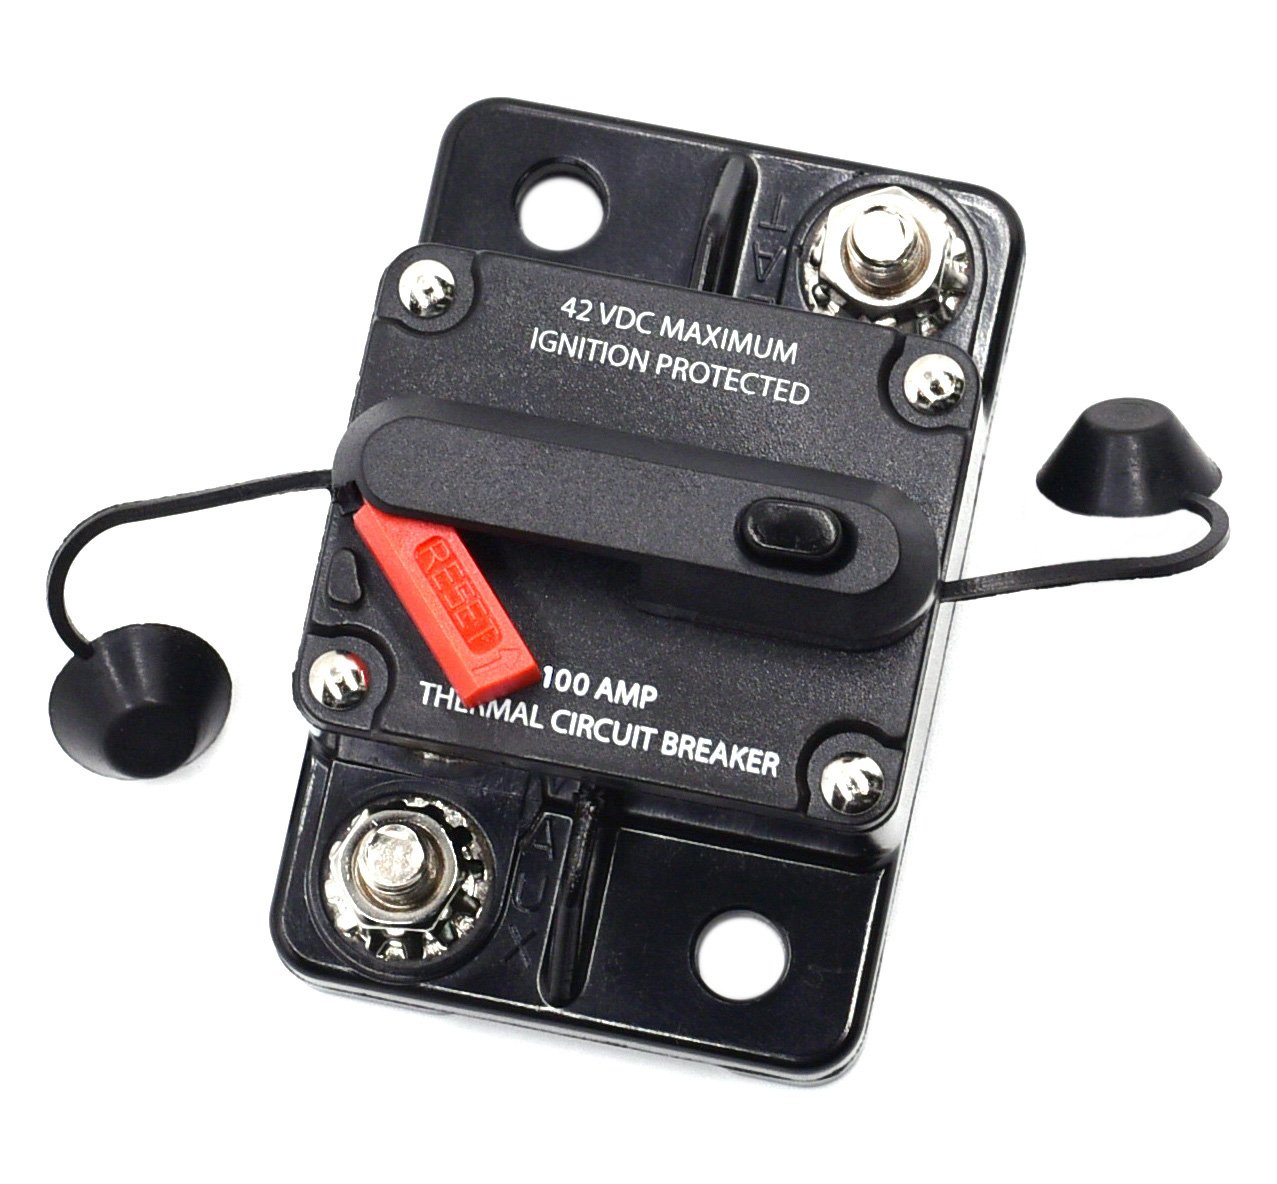 Cllena 100 Amp Circuit Breaker for Car Truck Rv ATV Marine Boat Vehicles / electronic systems